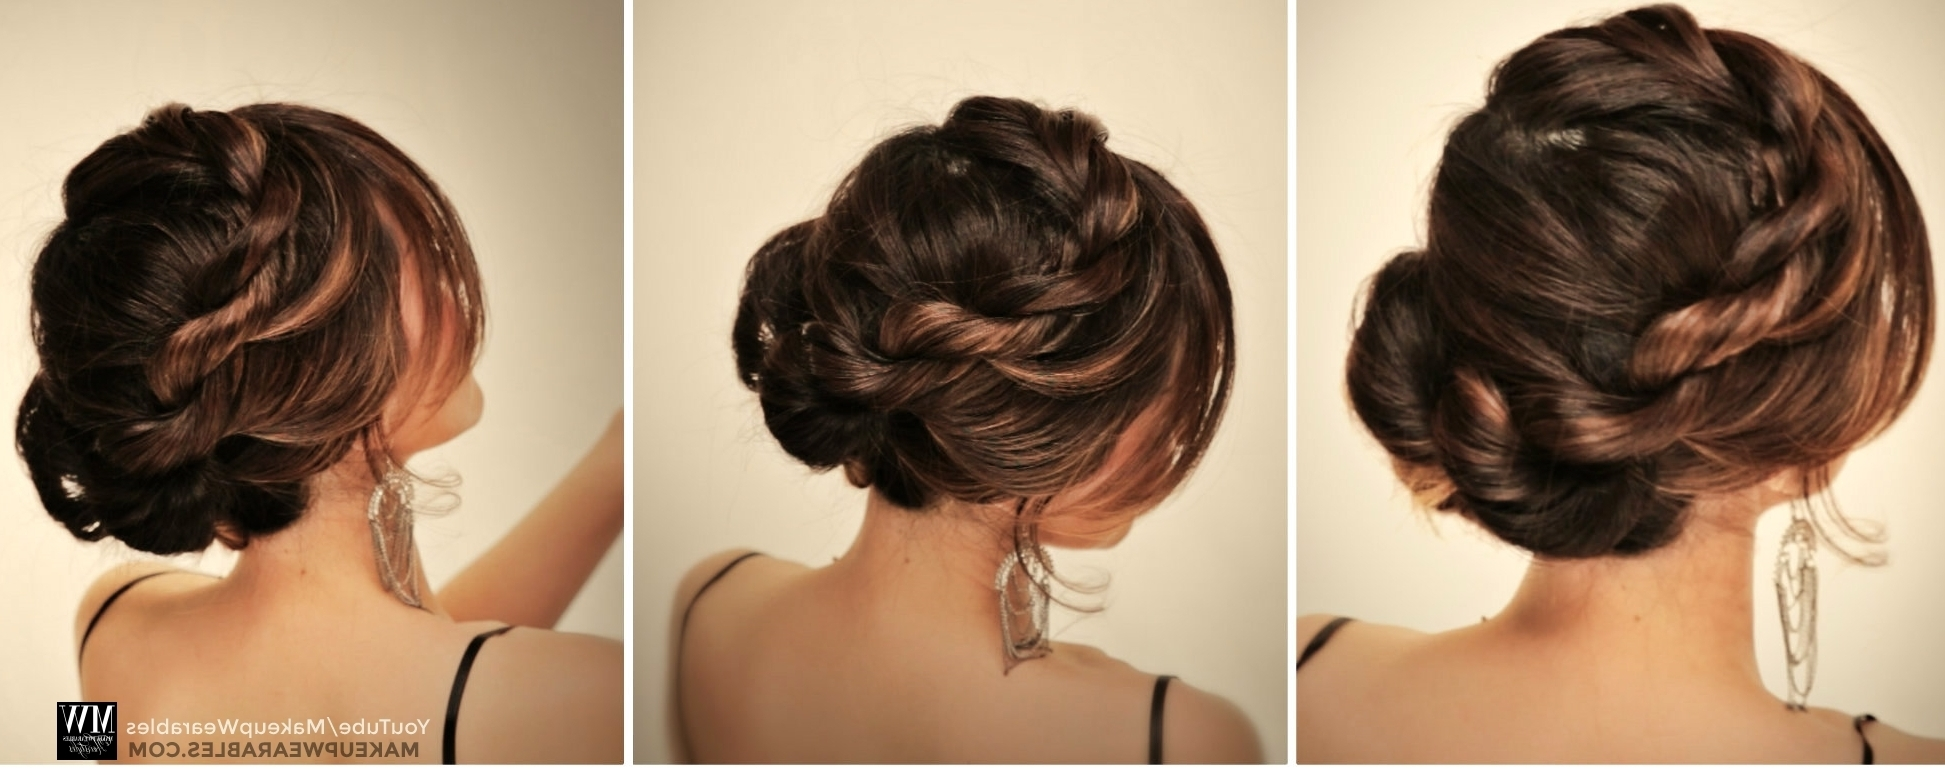 How To: 5 Amazingly Cute + Easy Hairstyles With A Simple Twist For Really Long Hair Updo Hairstyles (View 10 of 15)